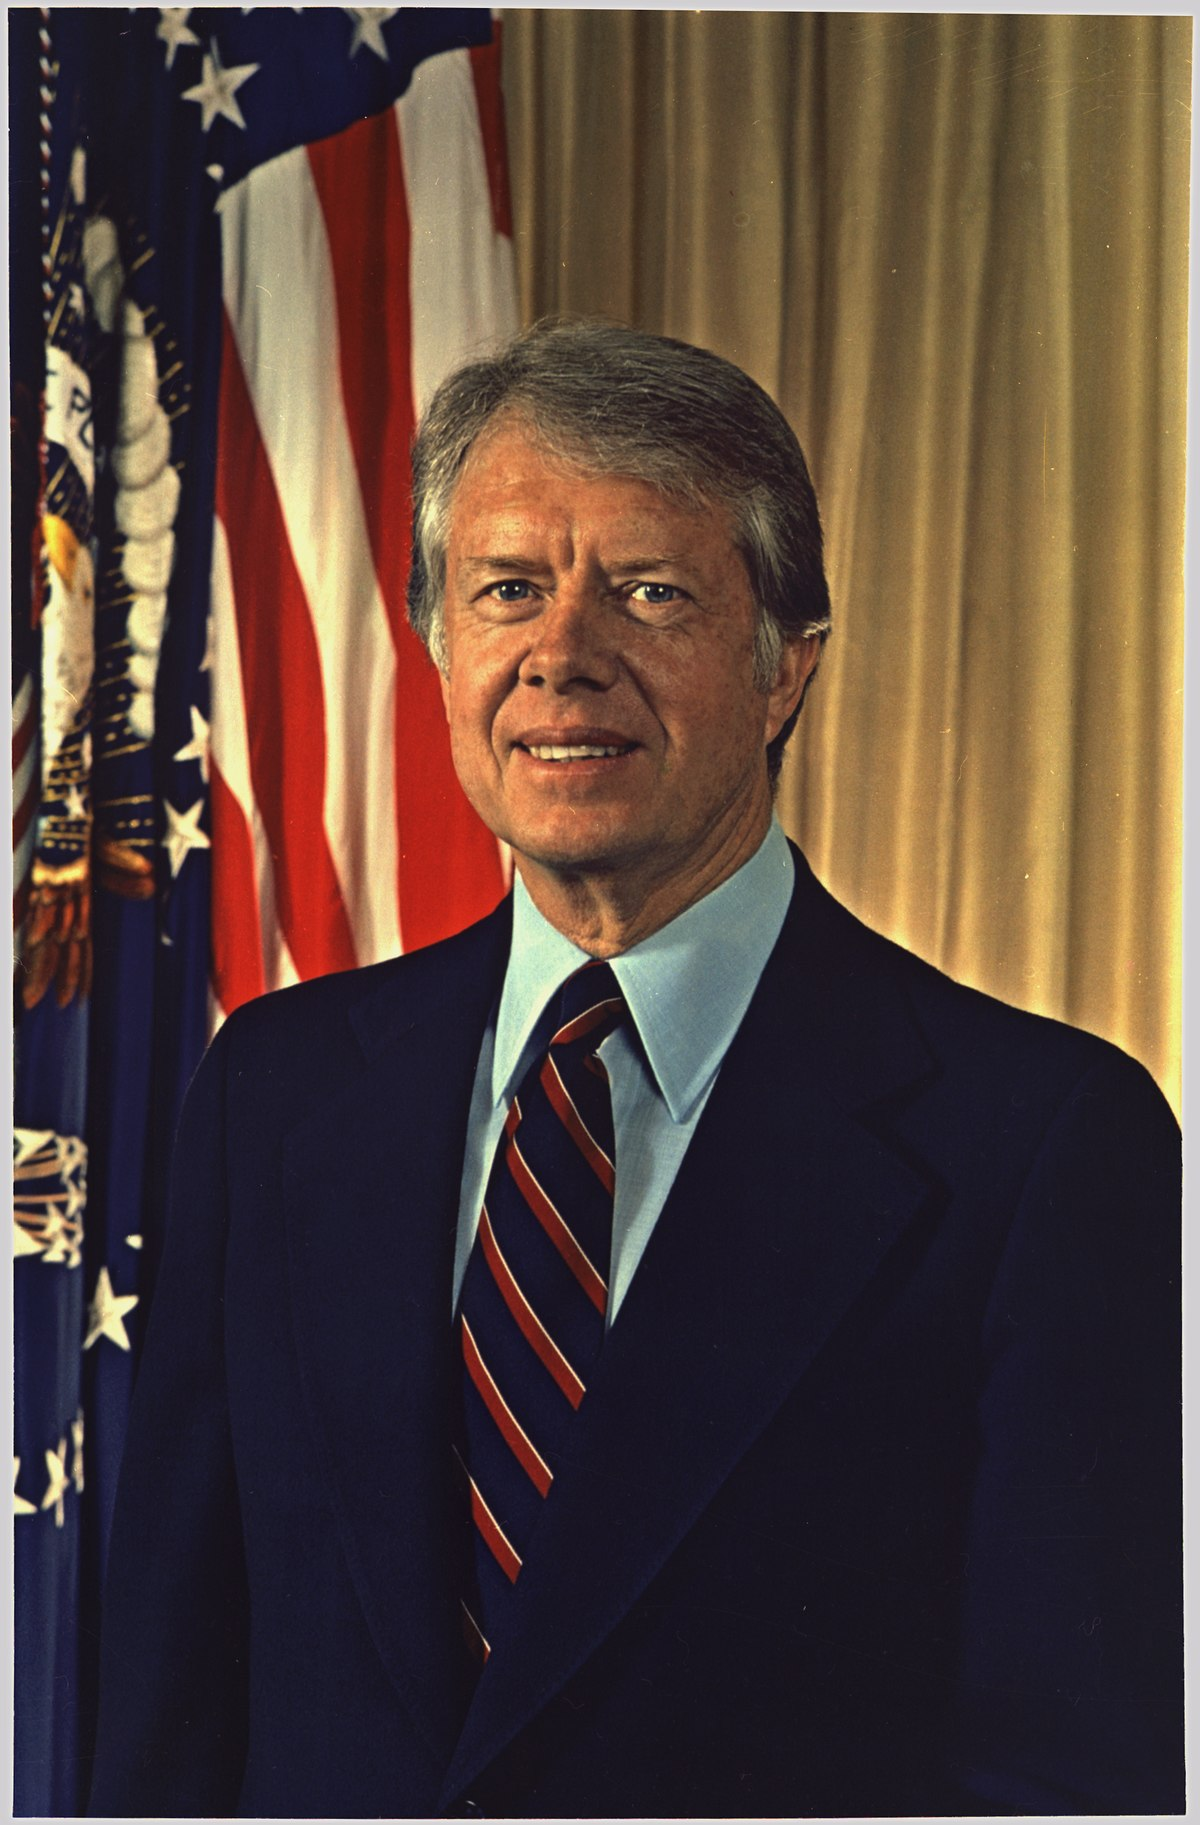 Jimmy Carter Wikipedia